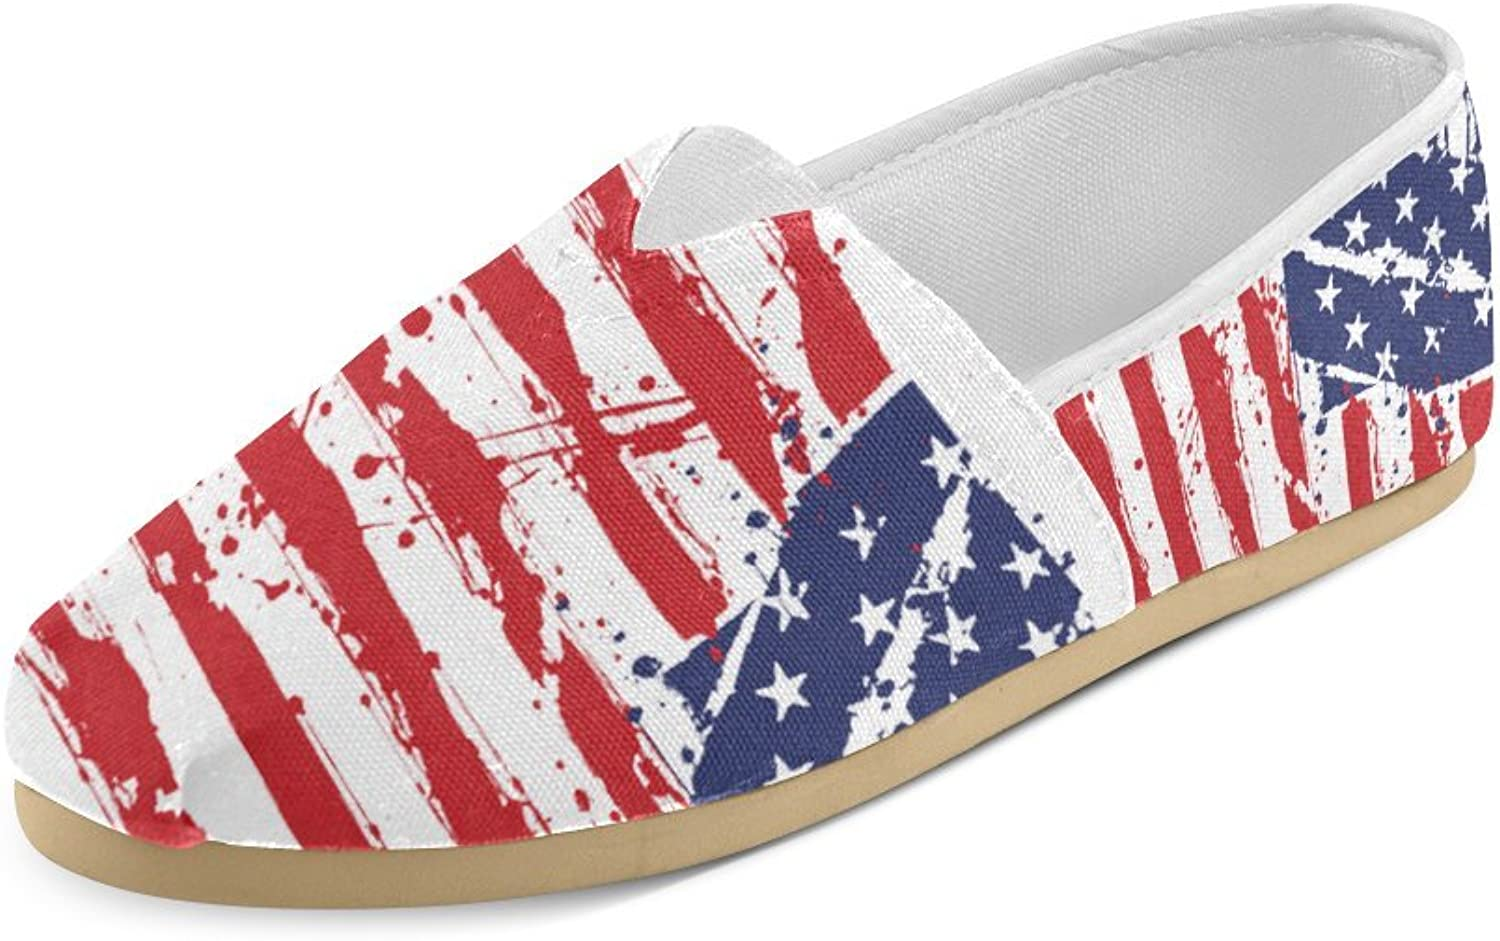 HUANGDAISY Unisex shoes American Flag Casual Canvas Loafers for Bia Kids Girl Or Men